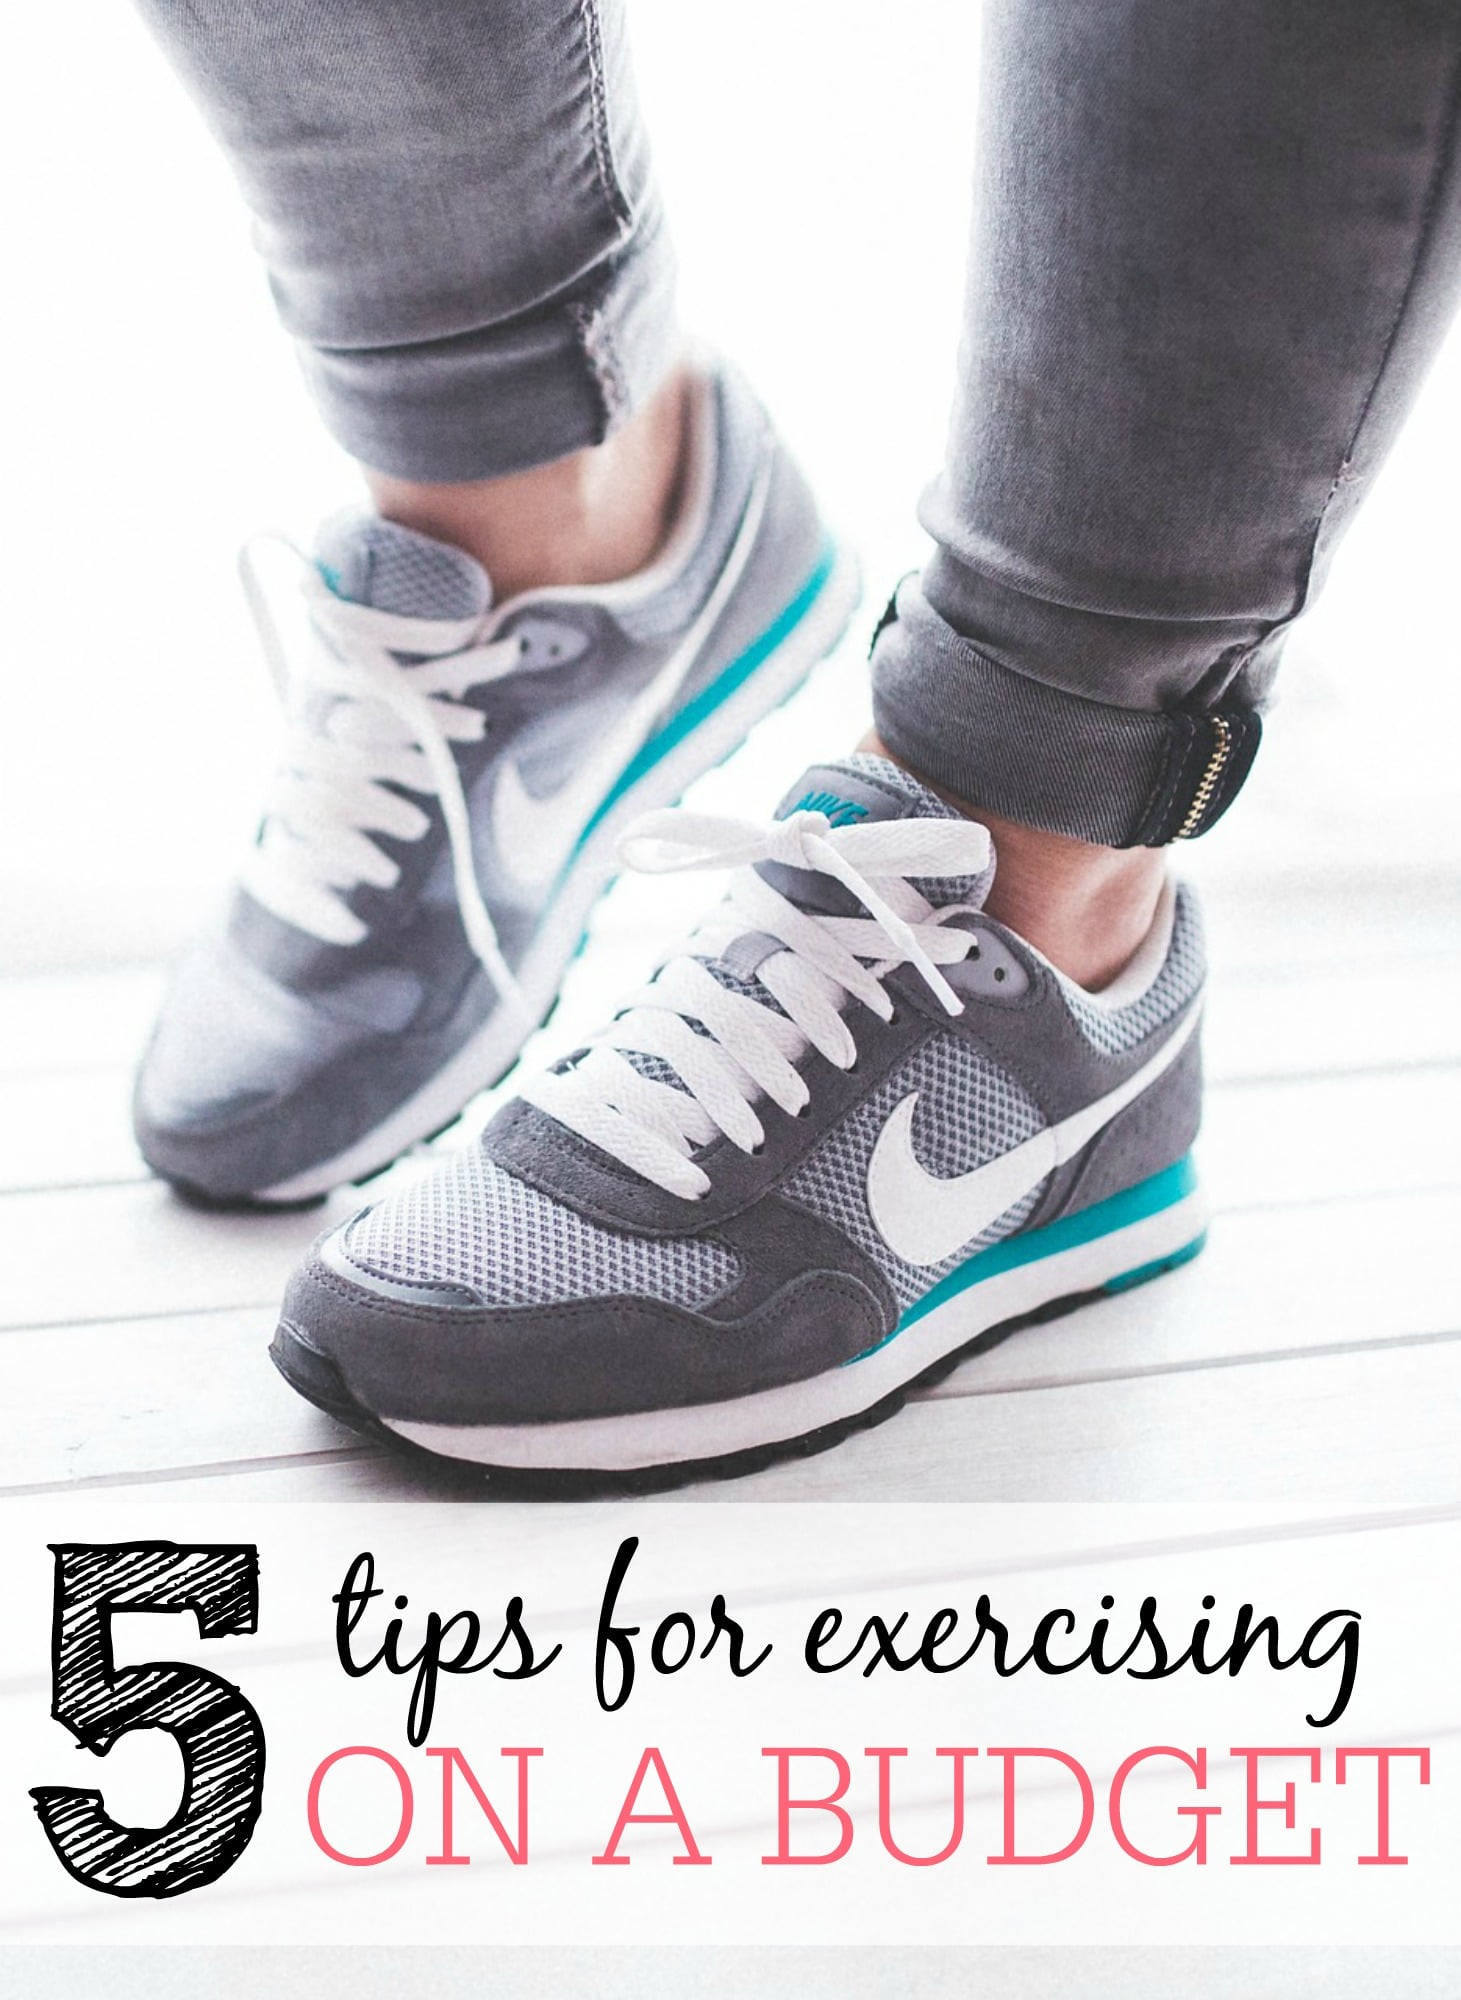 5 Tips for Exercising on a Budget